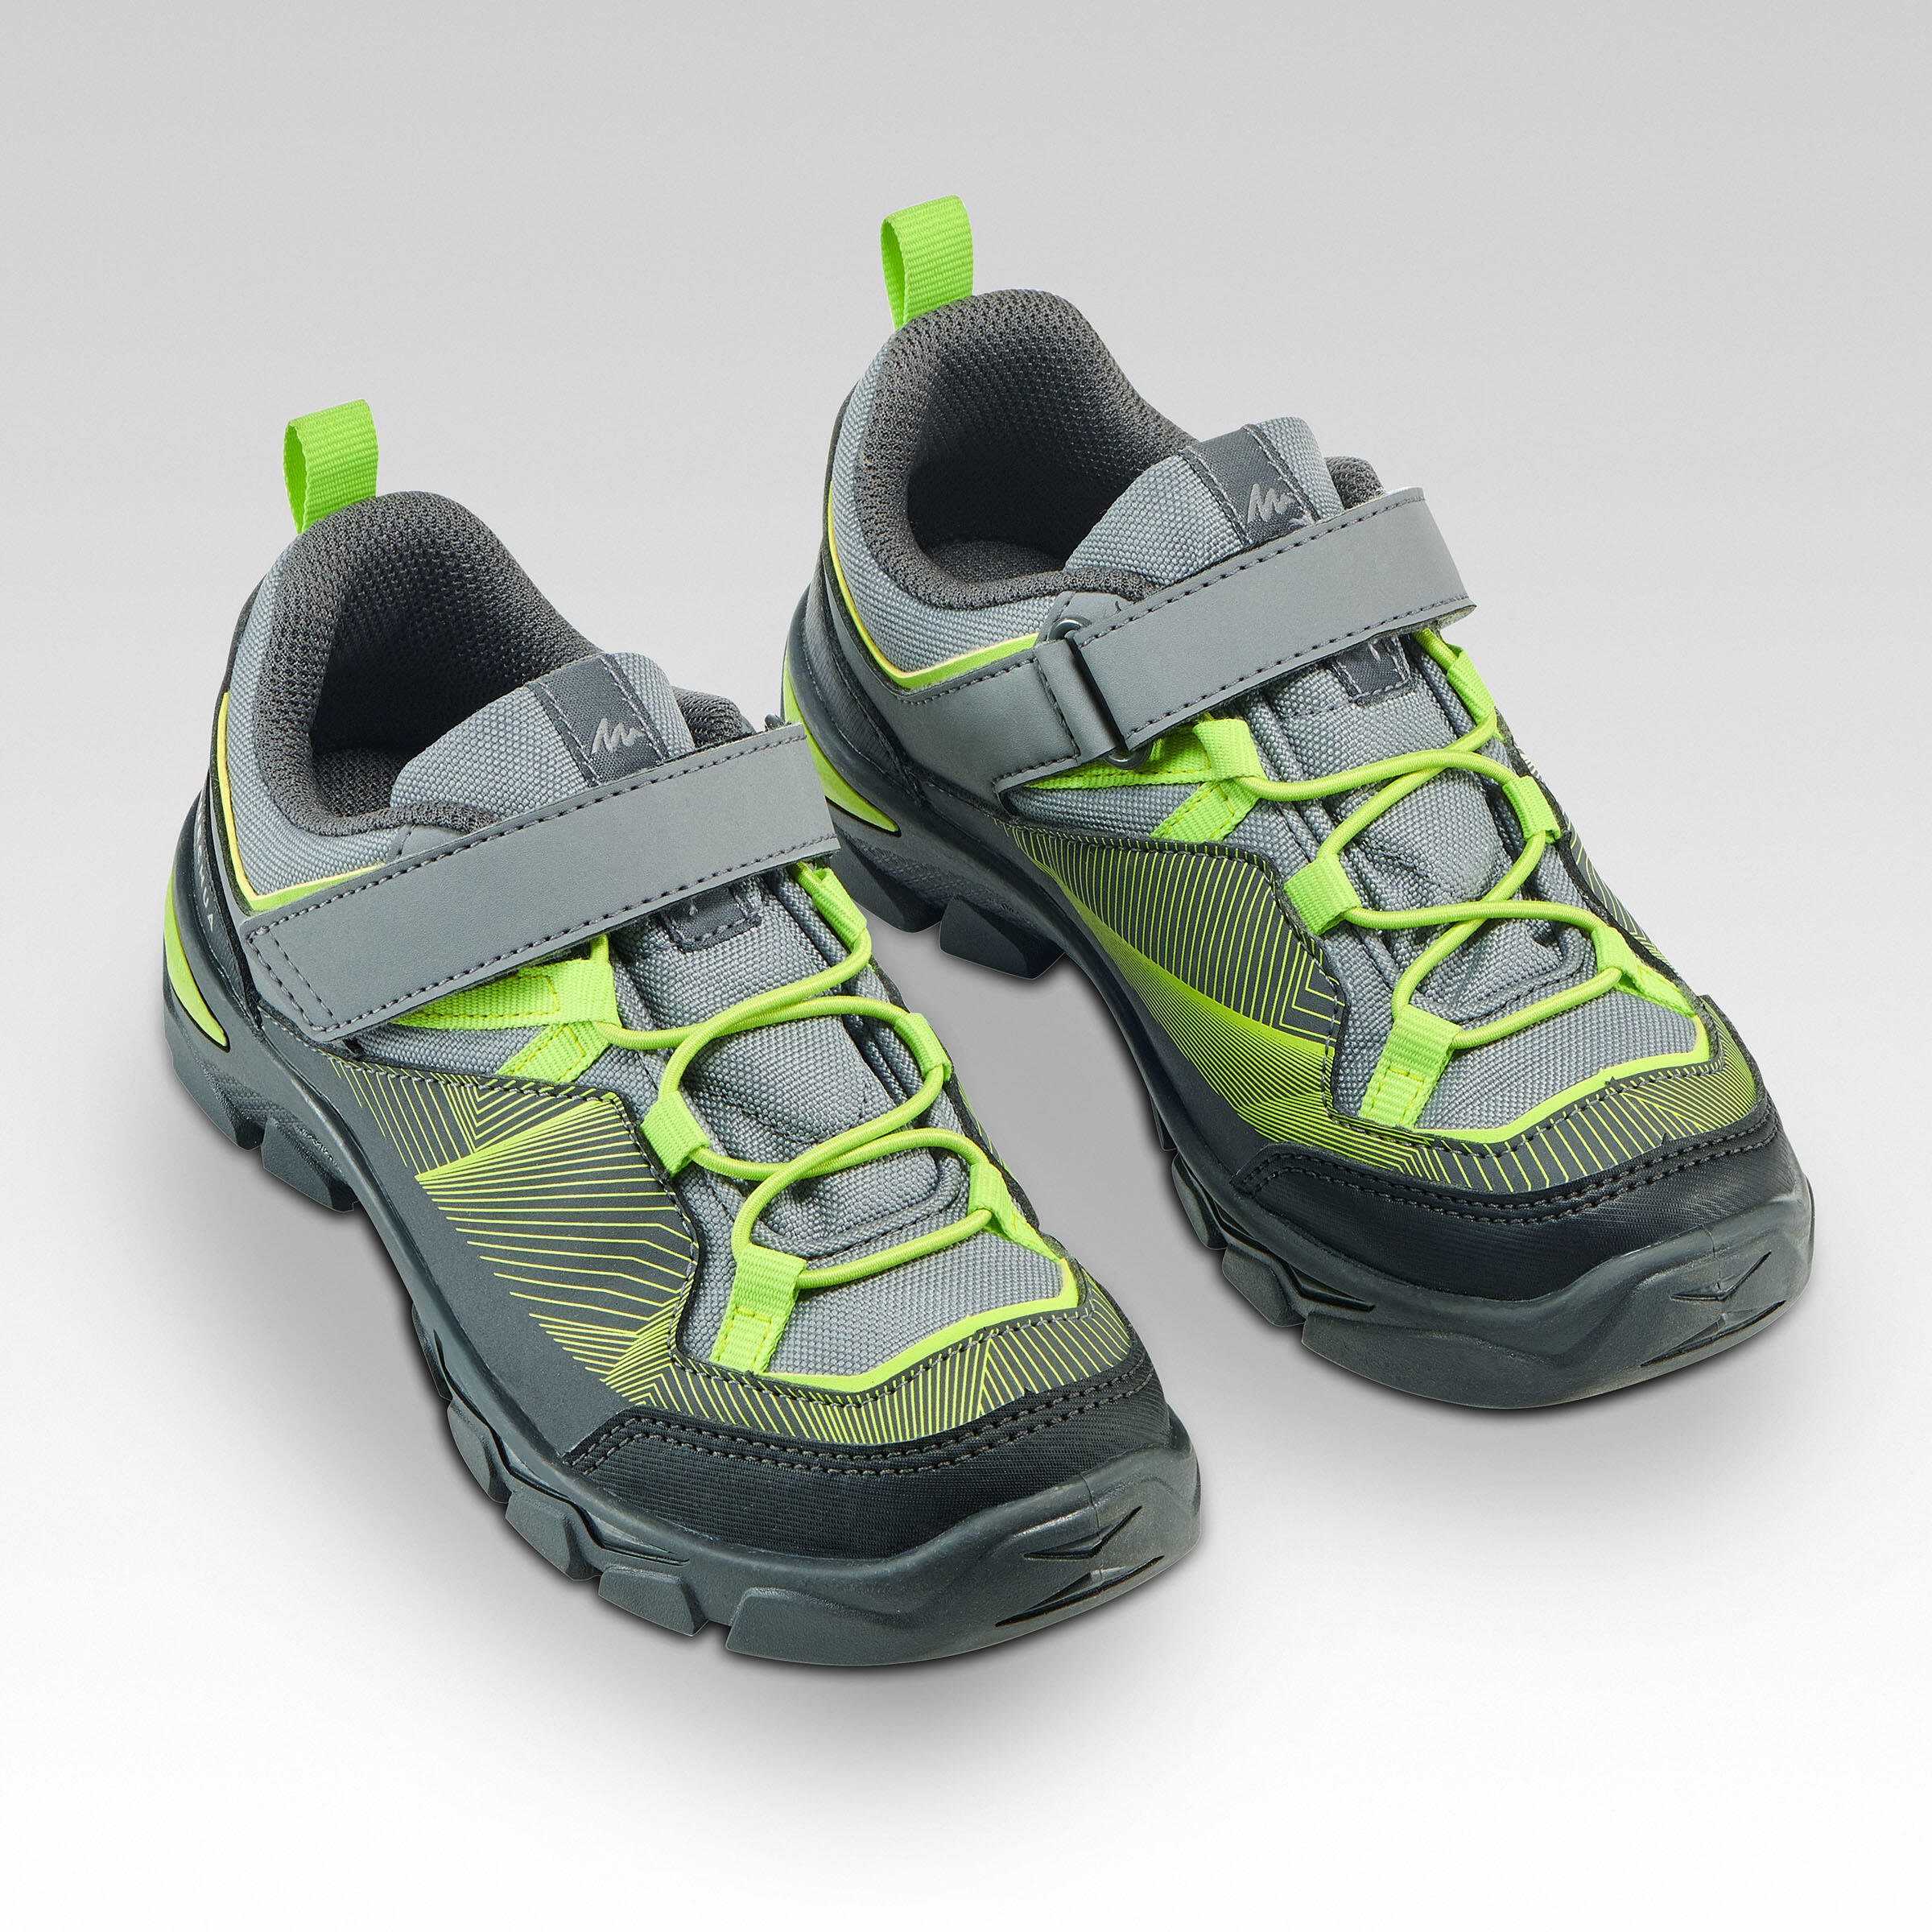 Kids' Velcro Hiking Shoes MH120 LOW 28